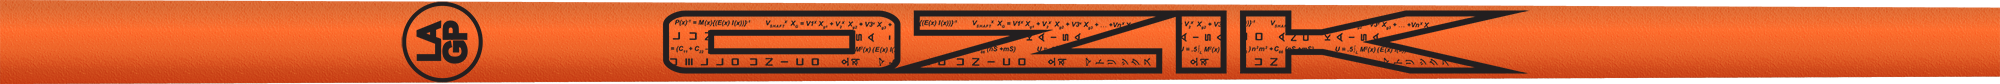 Ozik White Tie: Neon Orange Black Textured - Wood 70 X